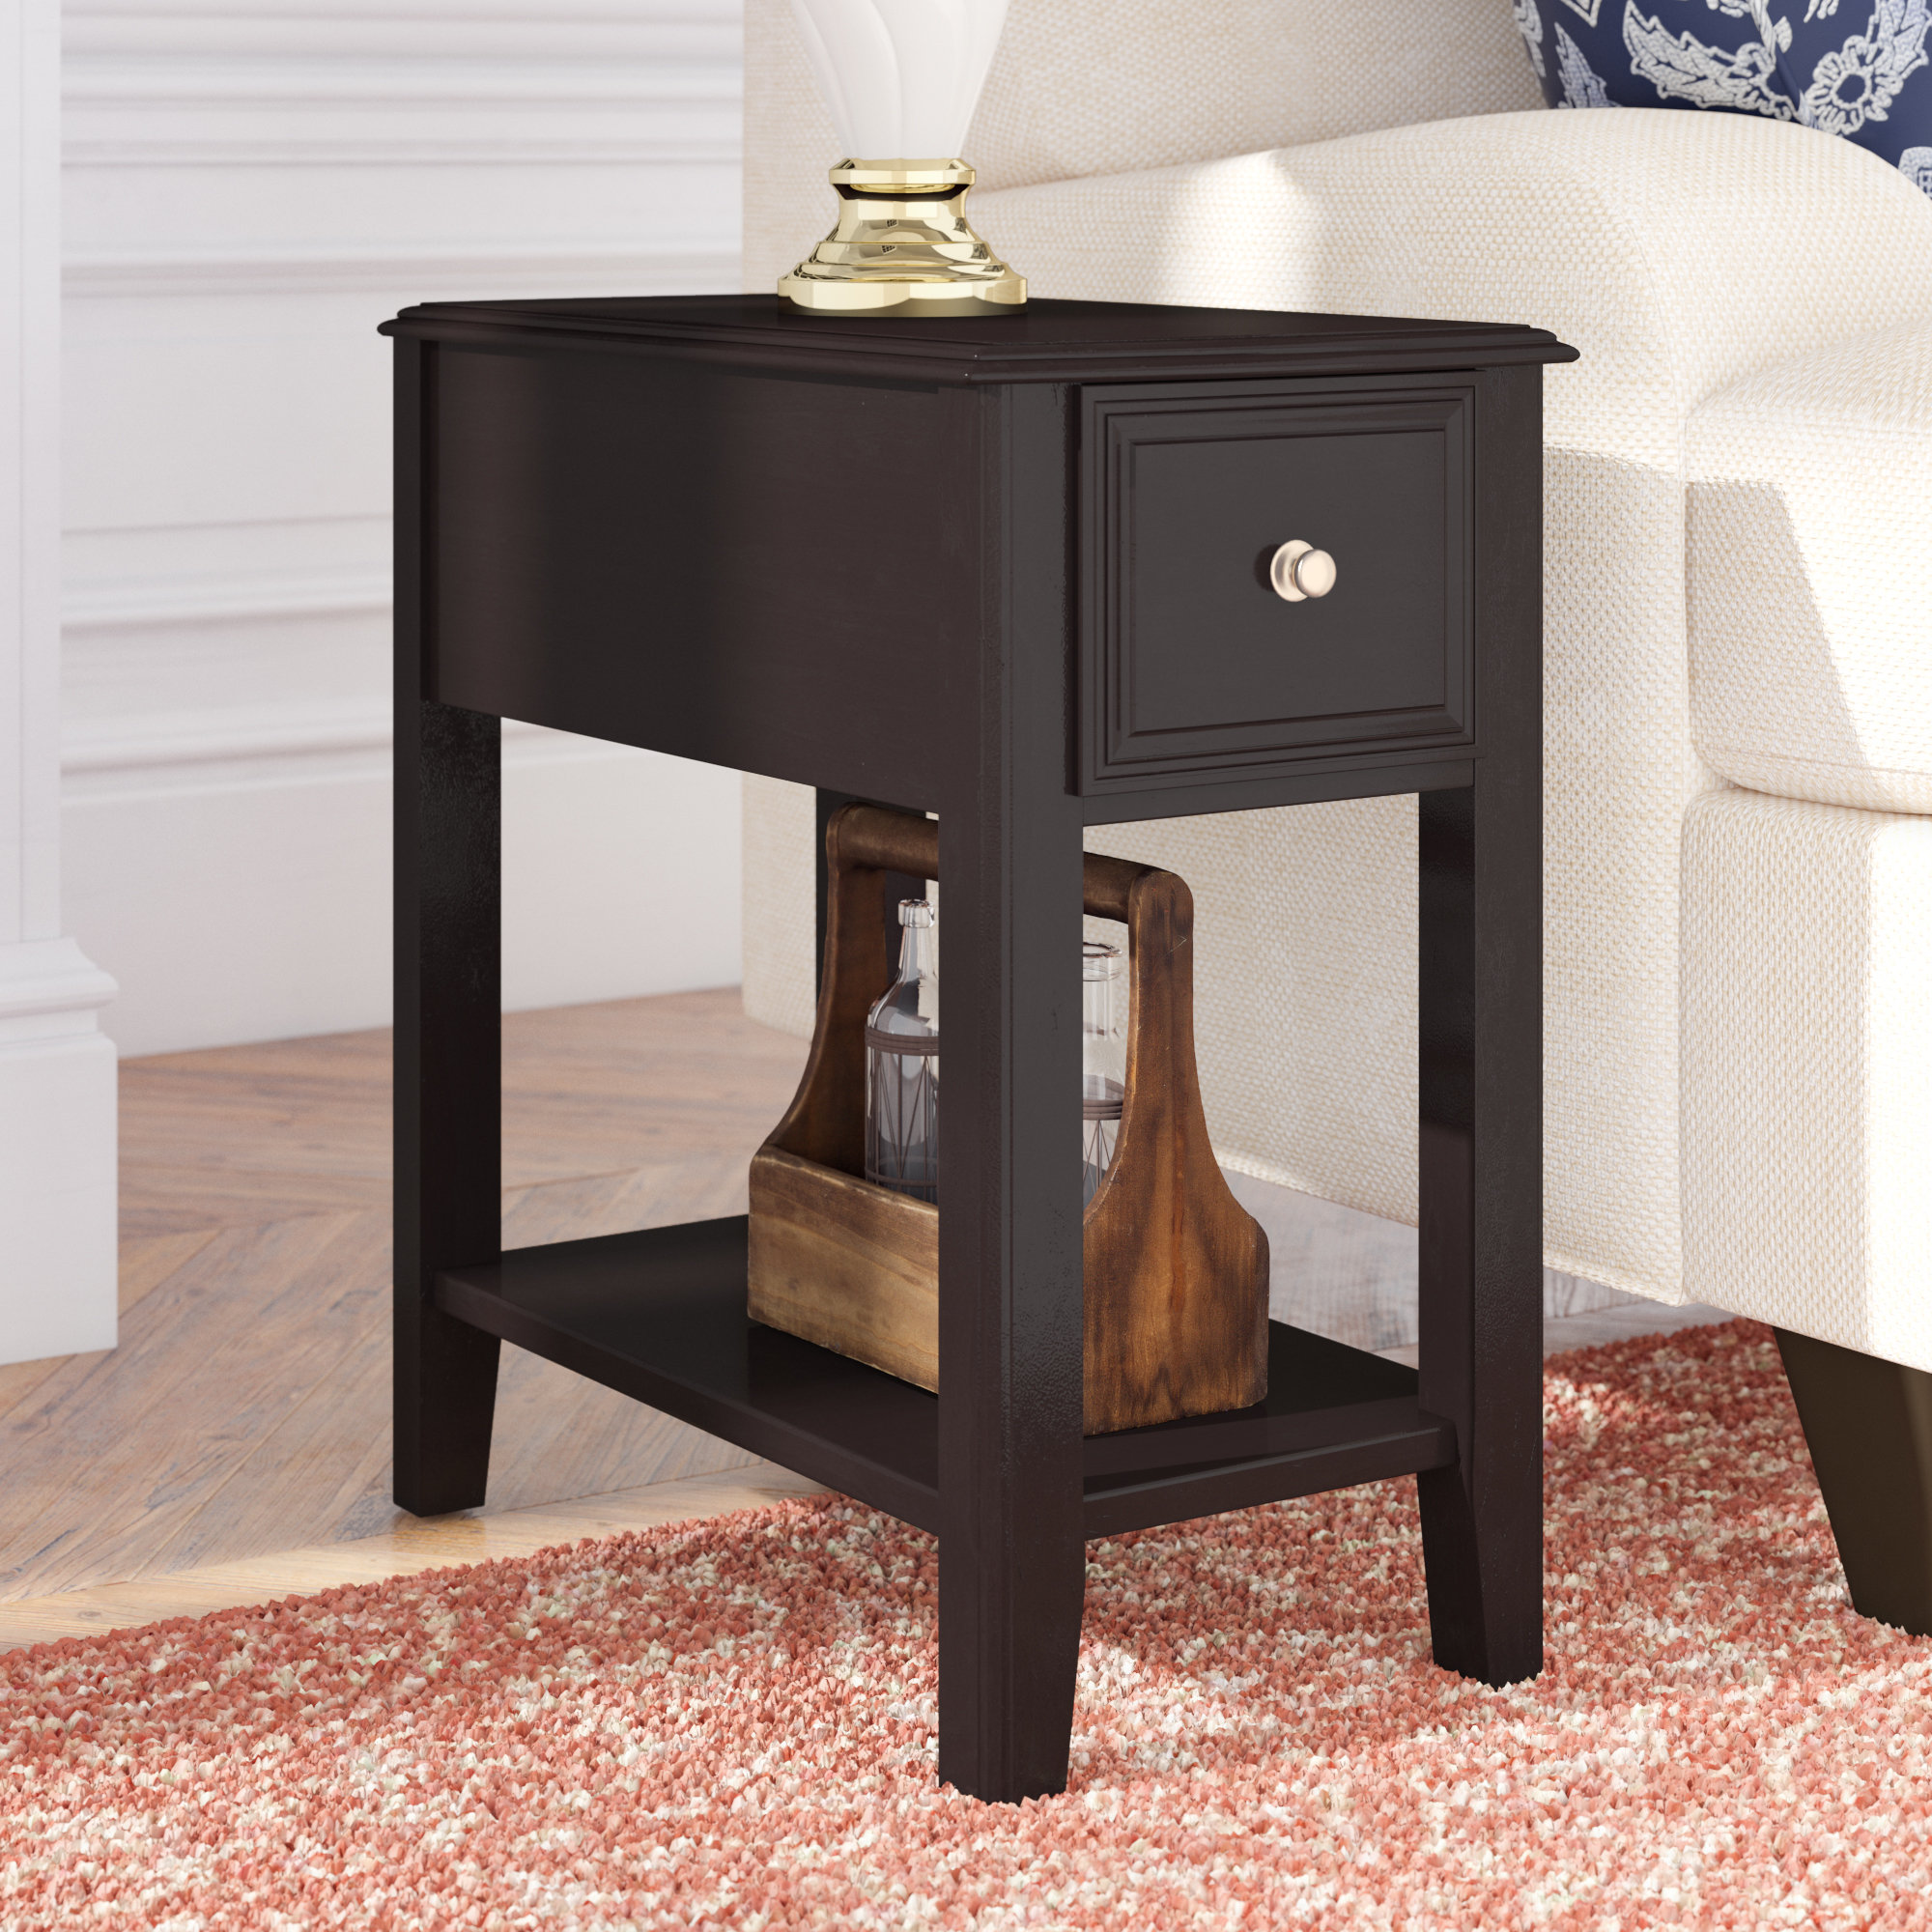 small end tables you love hancock table with storage ifrane accent barn door entry marble style coffee winsome drawer awesome wicker target hampton bay outdoor furniture safavieh